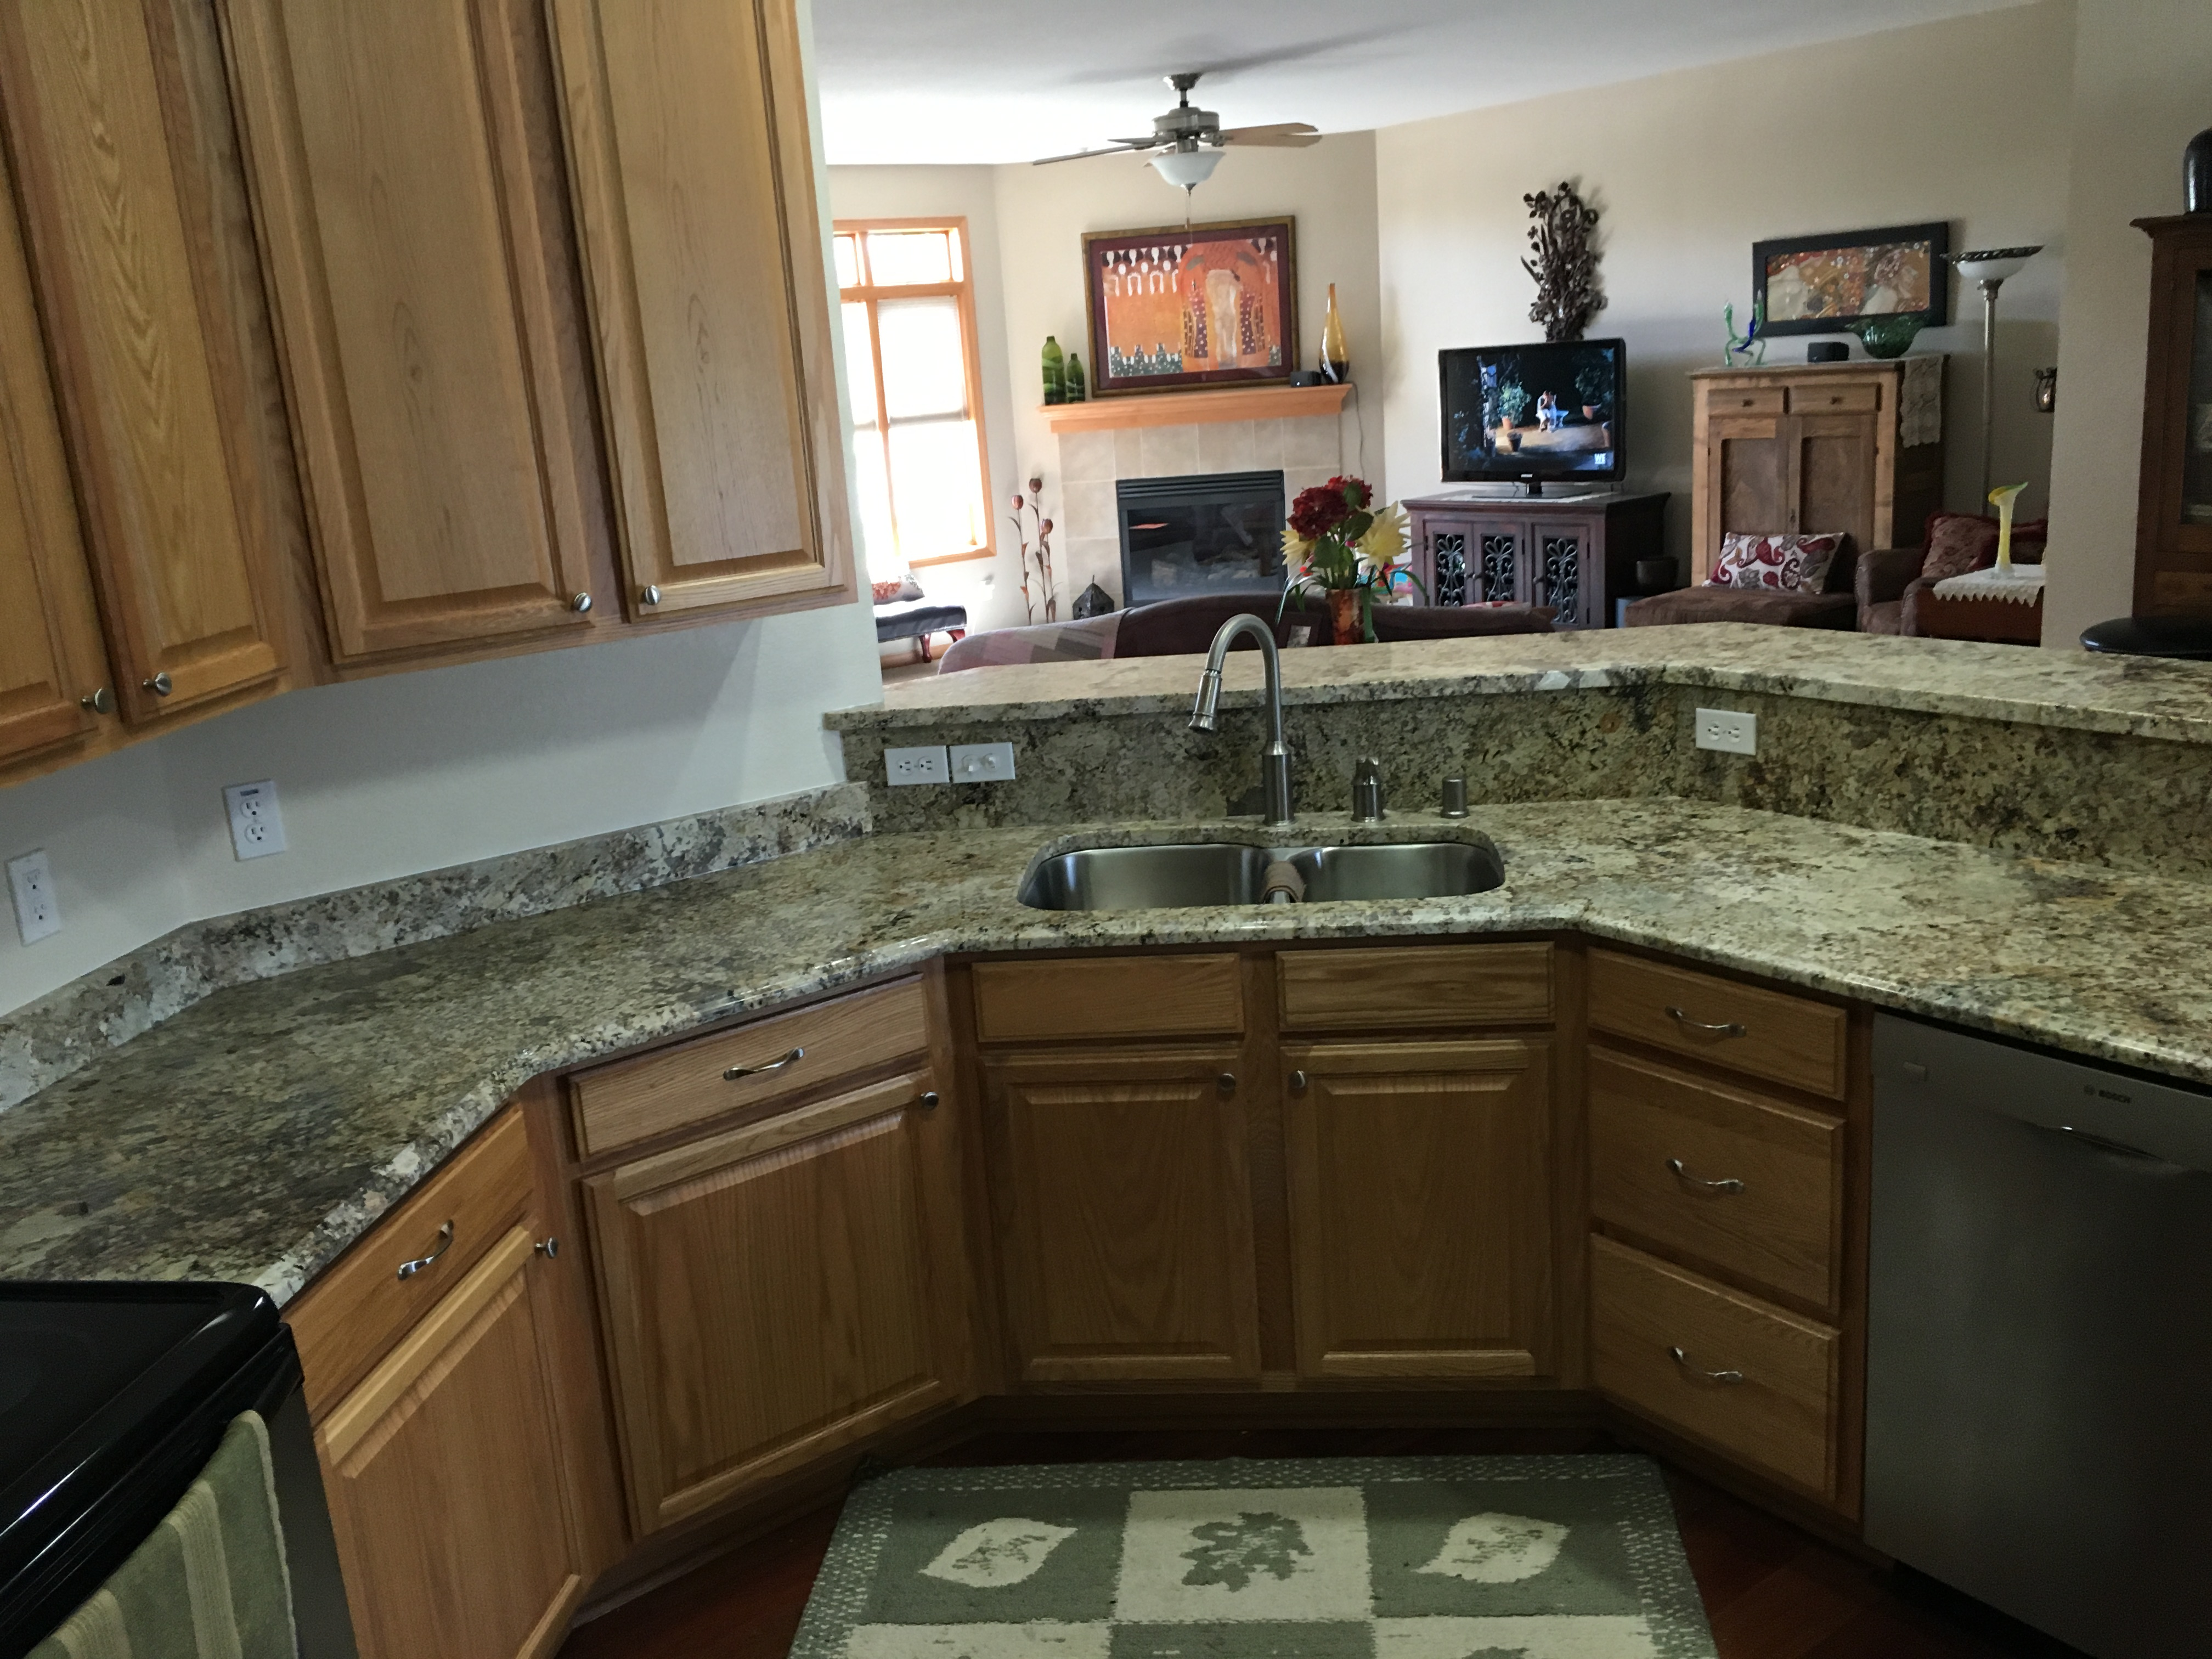 Kenosha racine granite in kenosha wi 53140 for Bath remodel gurnee